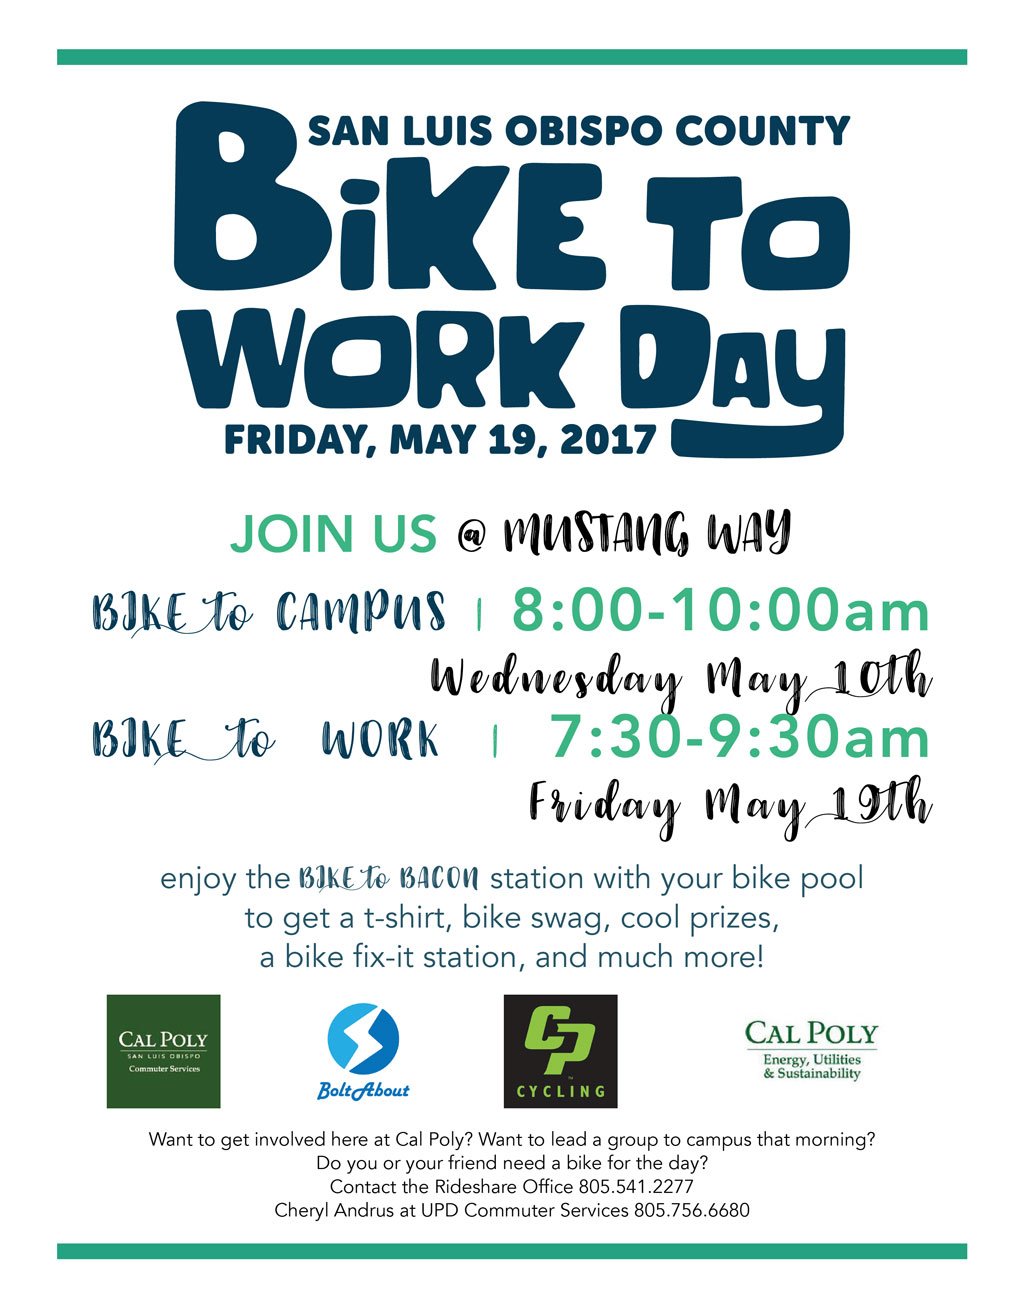 Bike to work day May 19th flyer